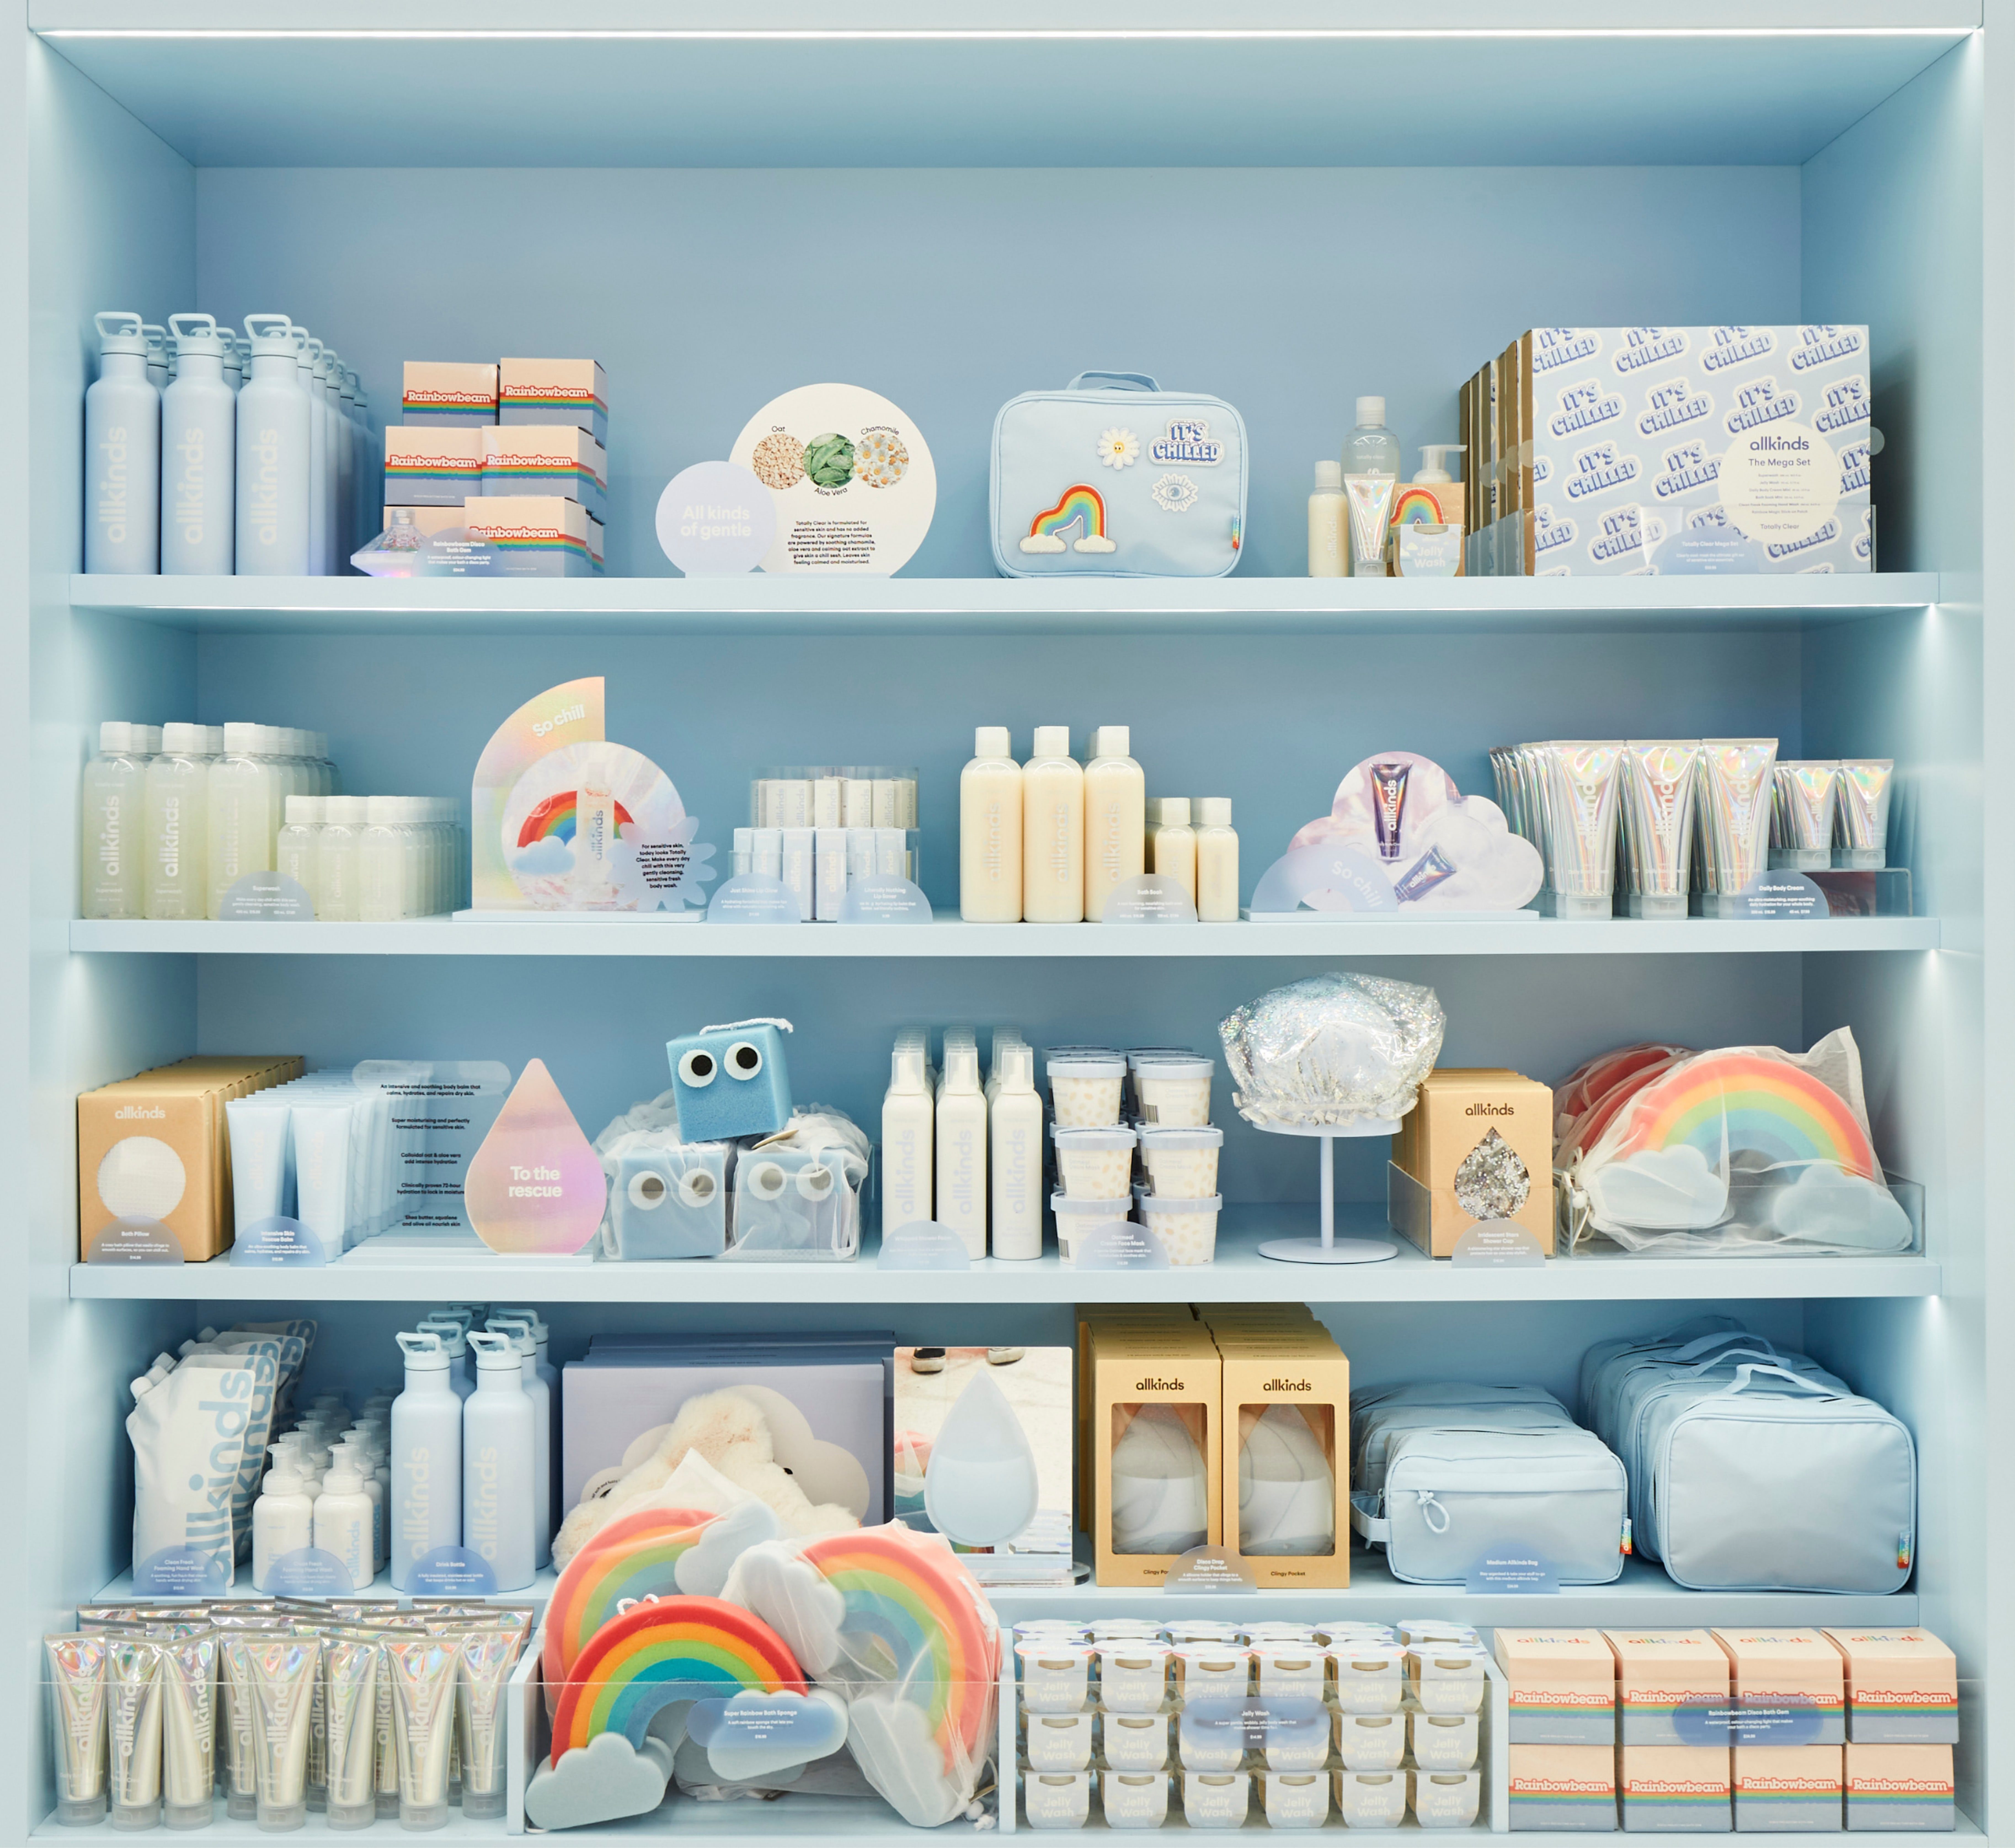 """Packaging and signage for Allkinds bath & body world """"Totally Clear"""""""